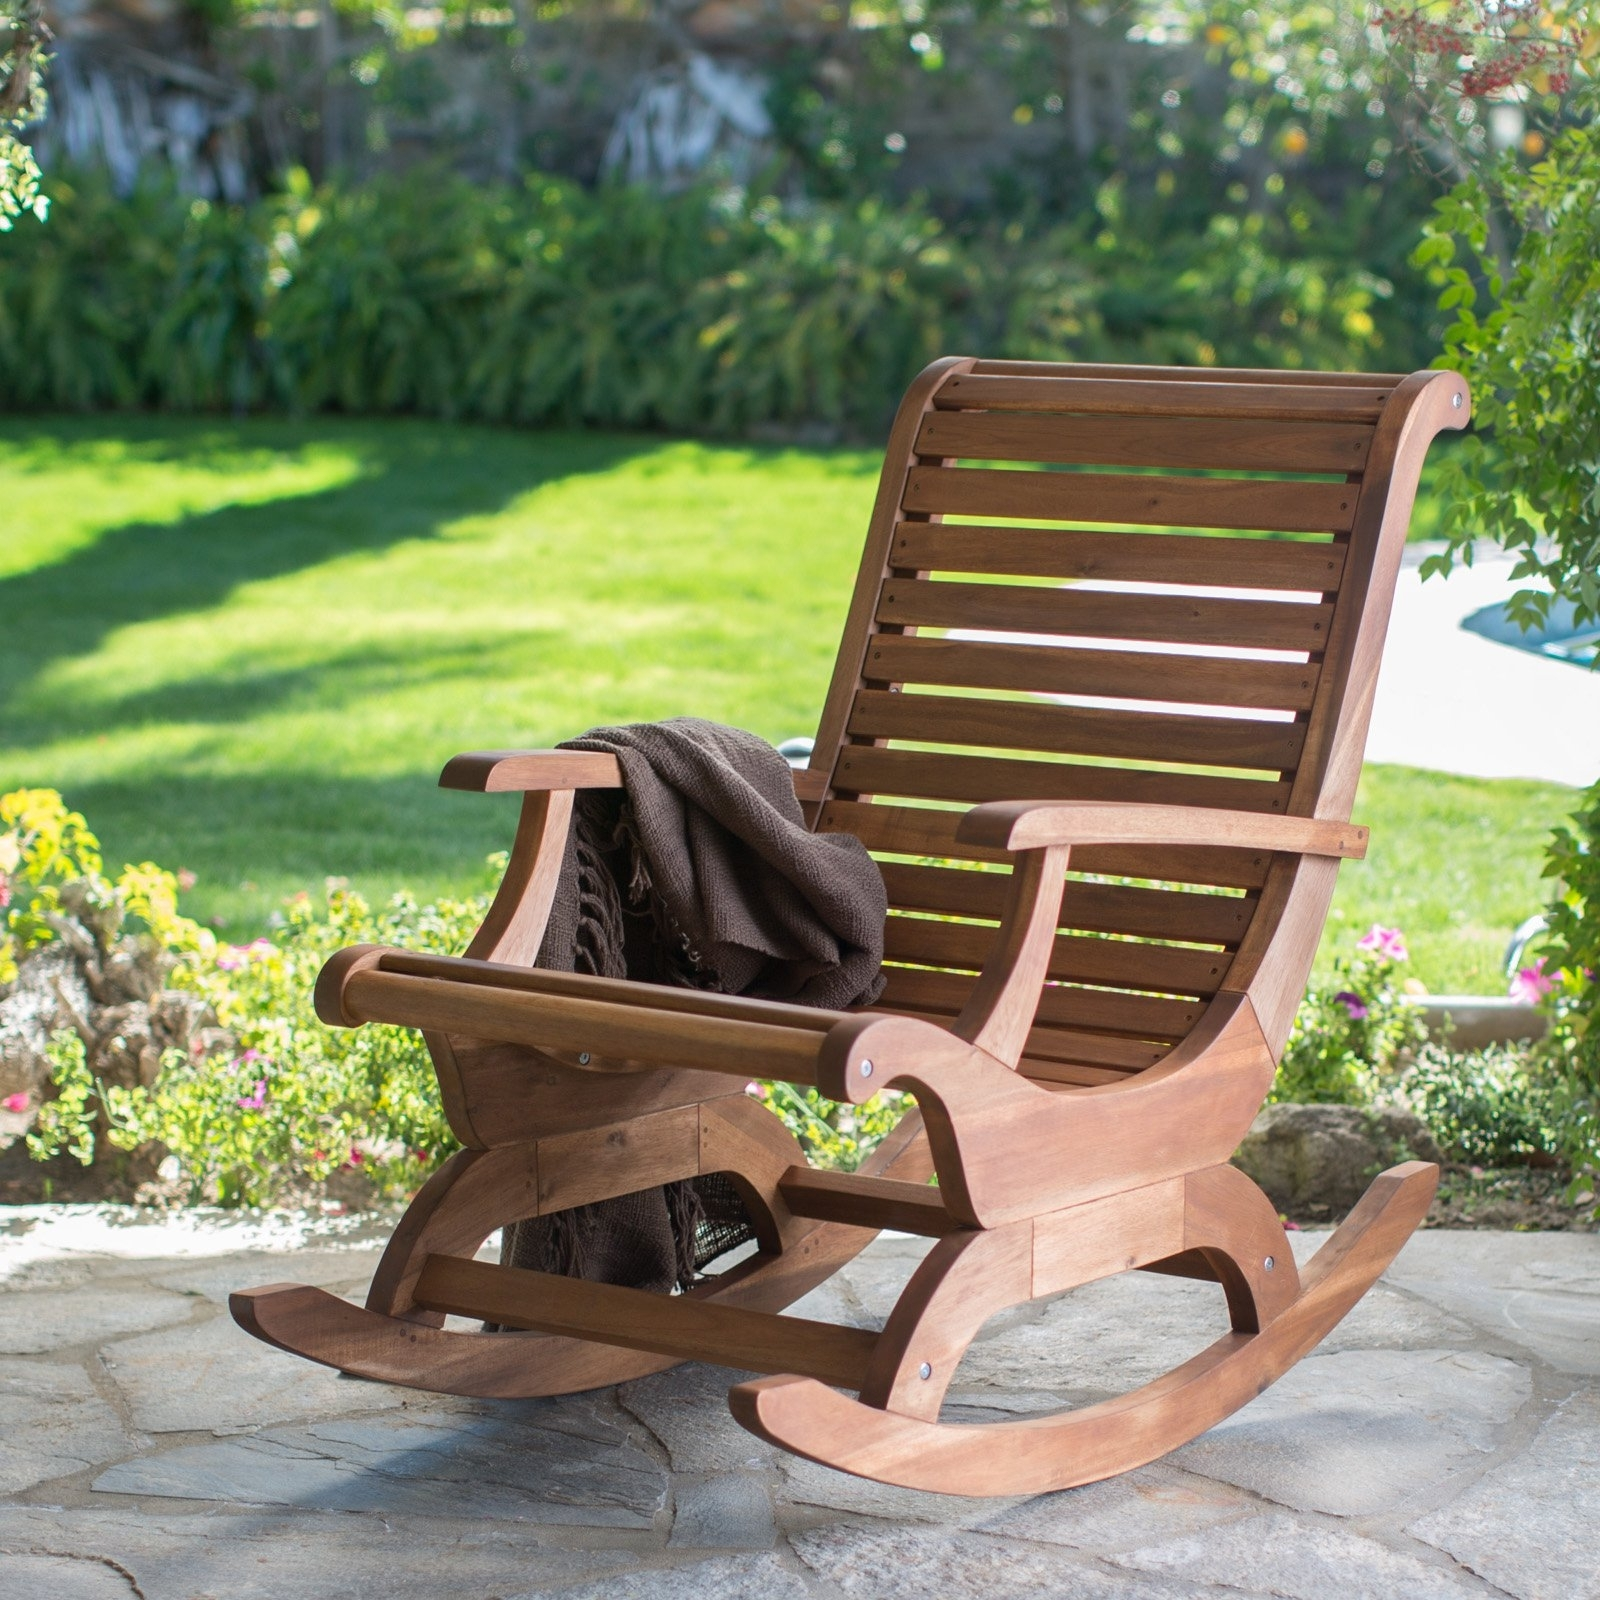 Belham Living Avondale Oversized Outdoor Rocking Chair – Natural Within Preferred Outdoor Rocking Chairs (View 3 of 15)